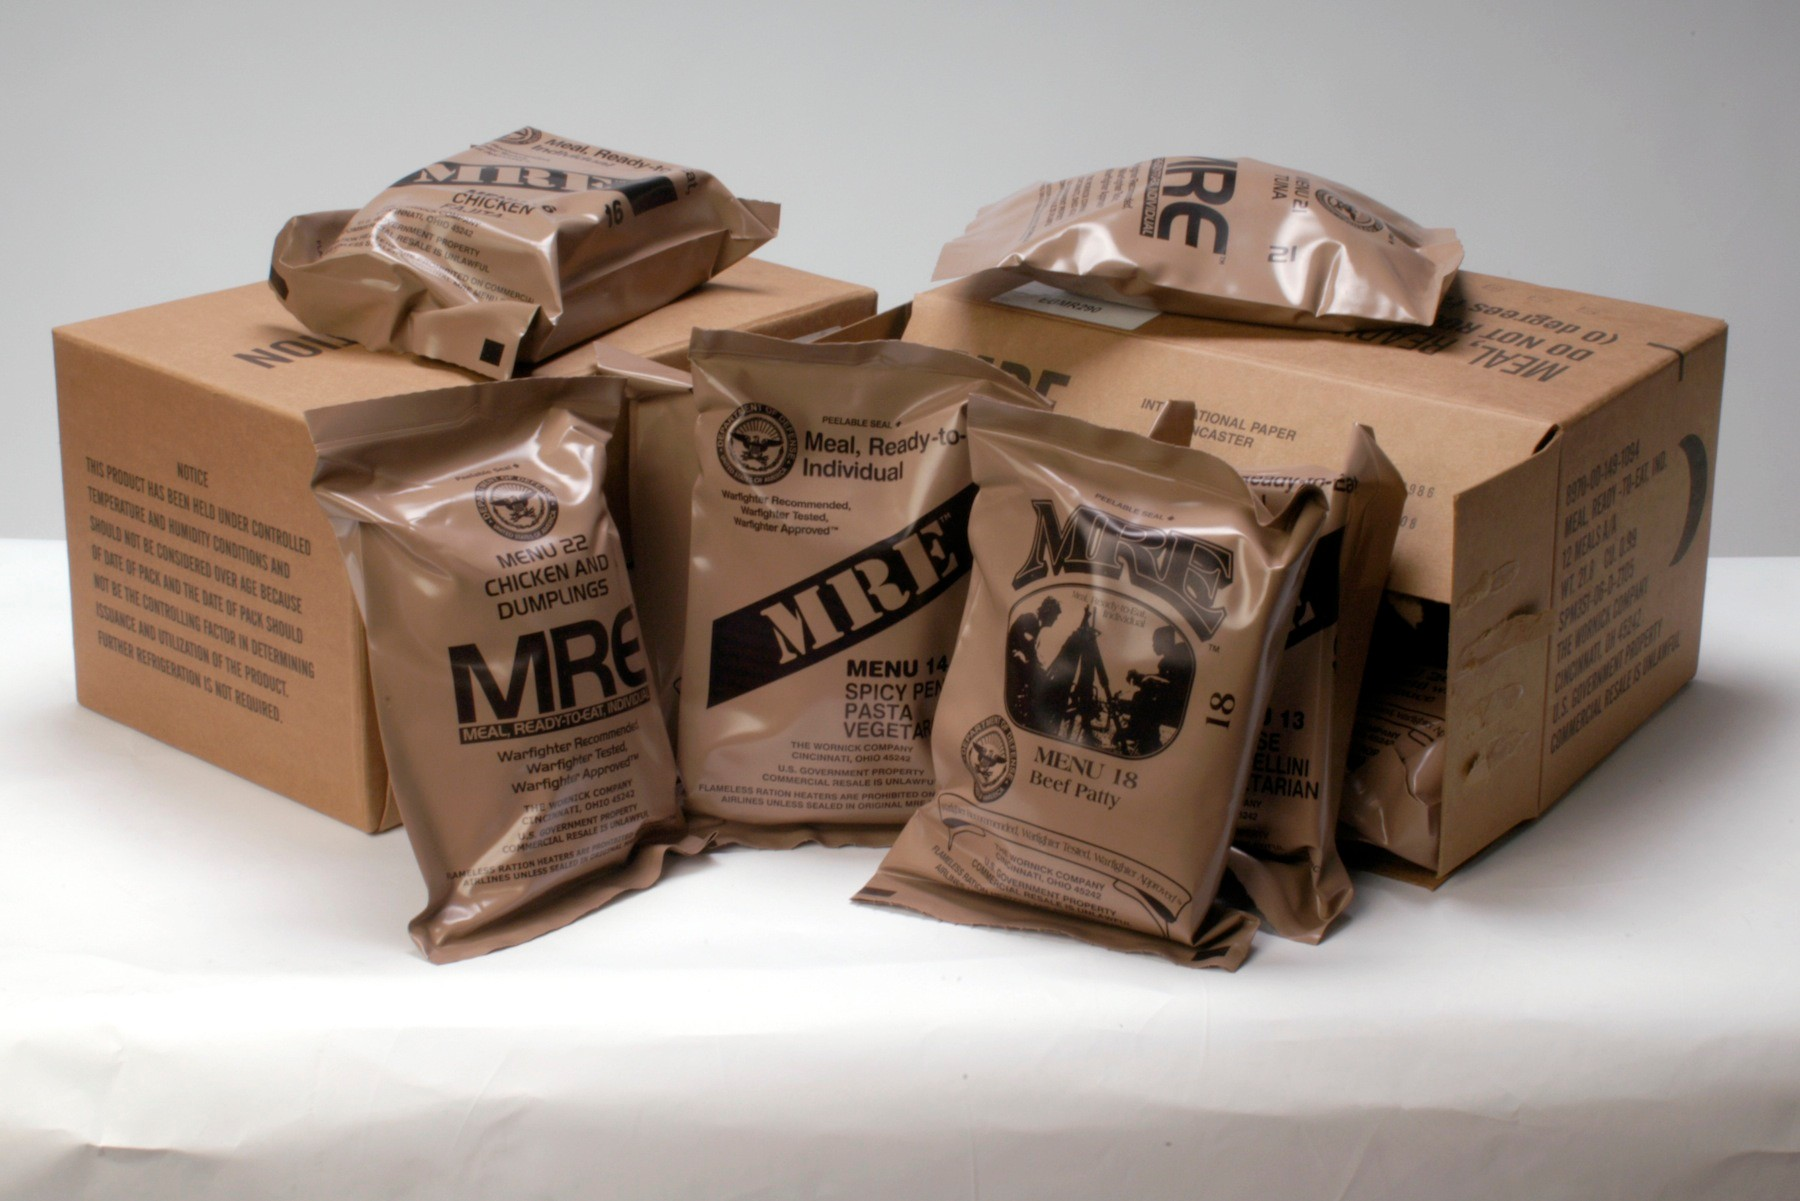 New MRE rations and meal bags